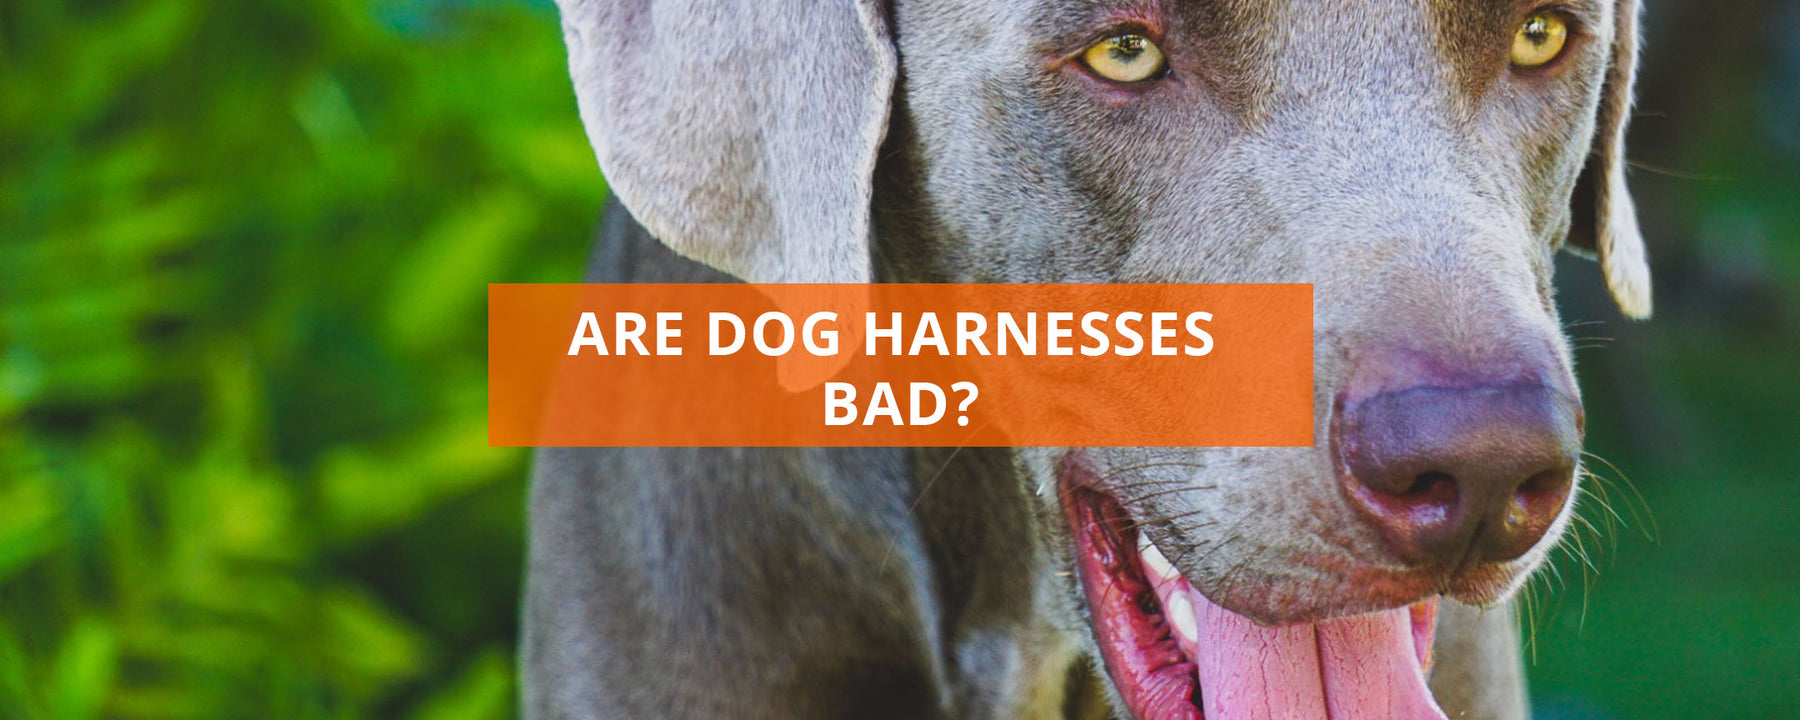 Are Dog Harnesses Bad?